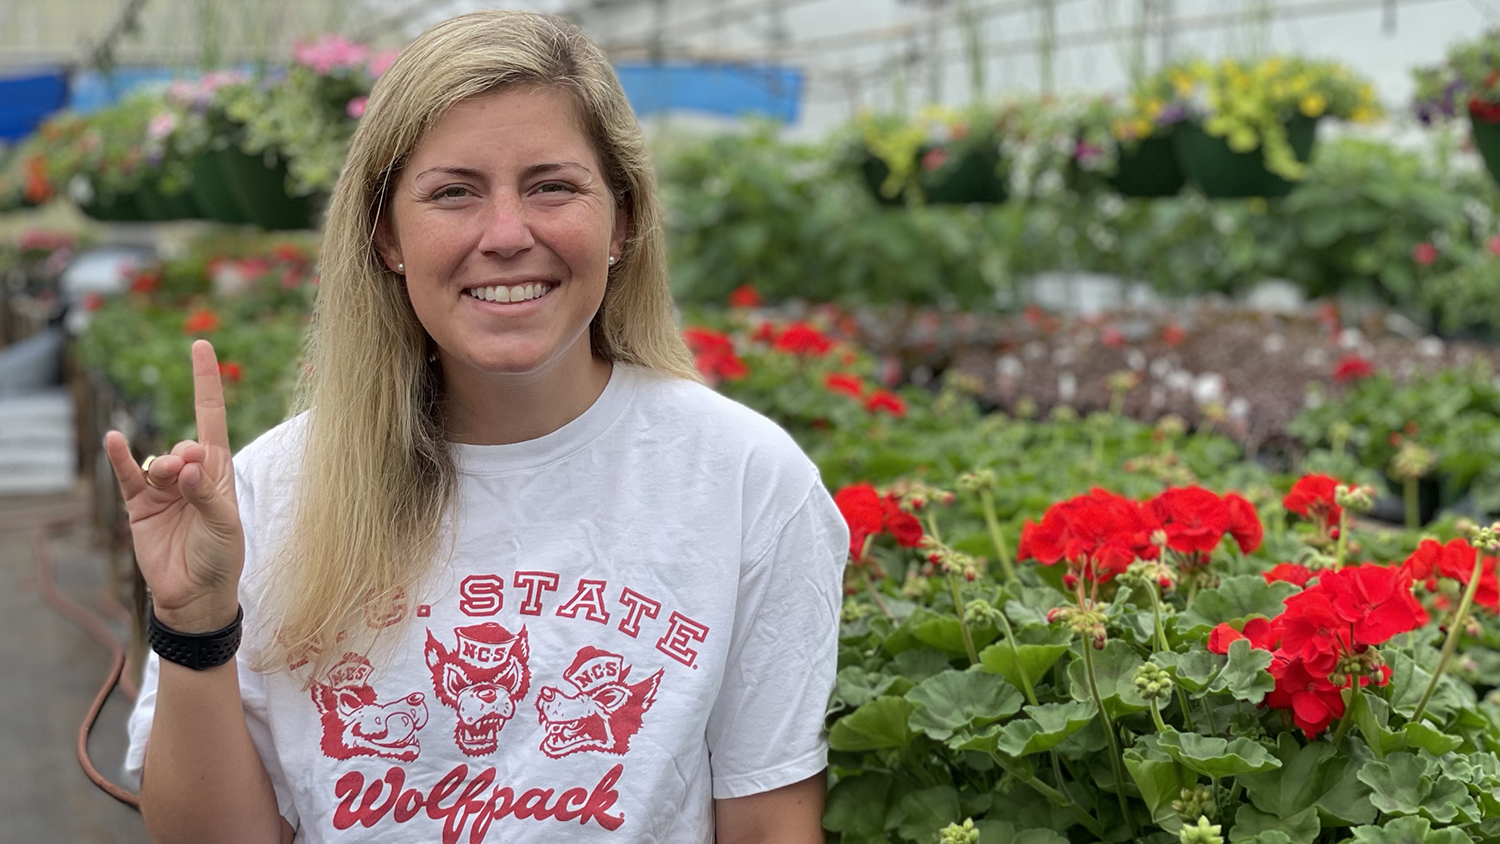 Ivy Briggs stands with the Wolfpack hand sign in a greenhouse full of flowers.